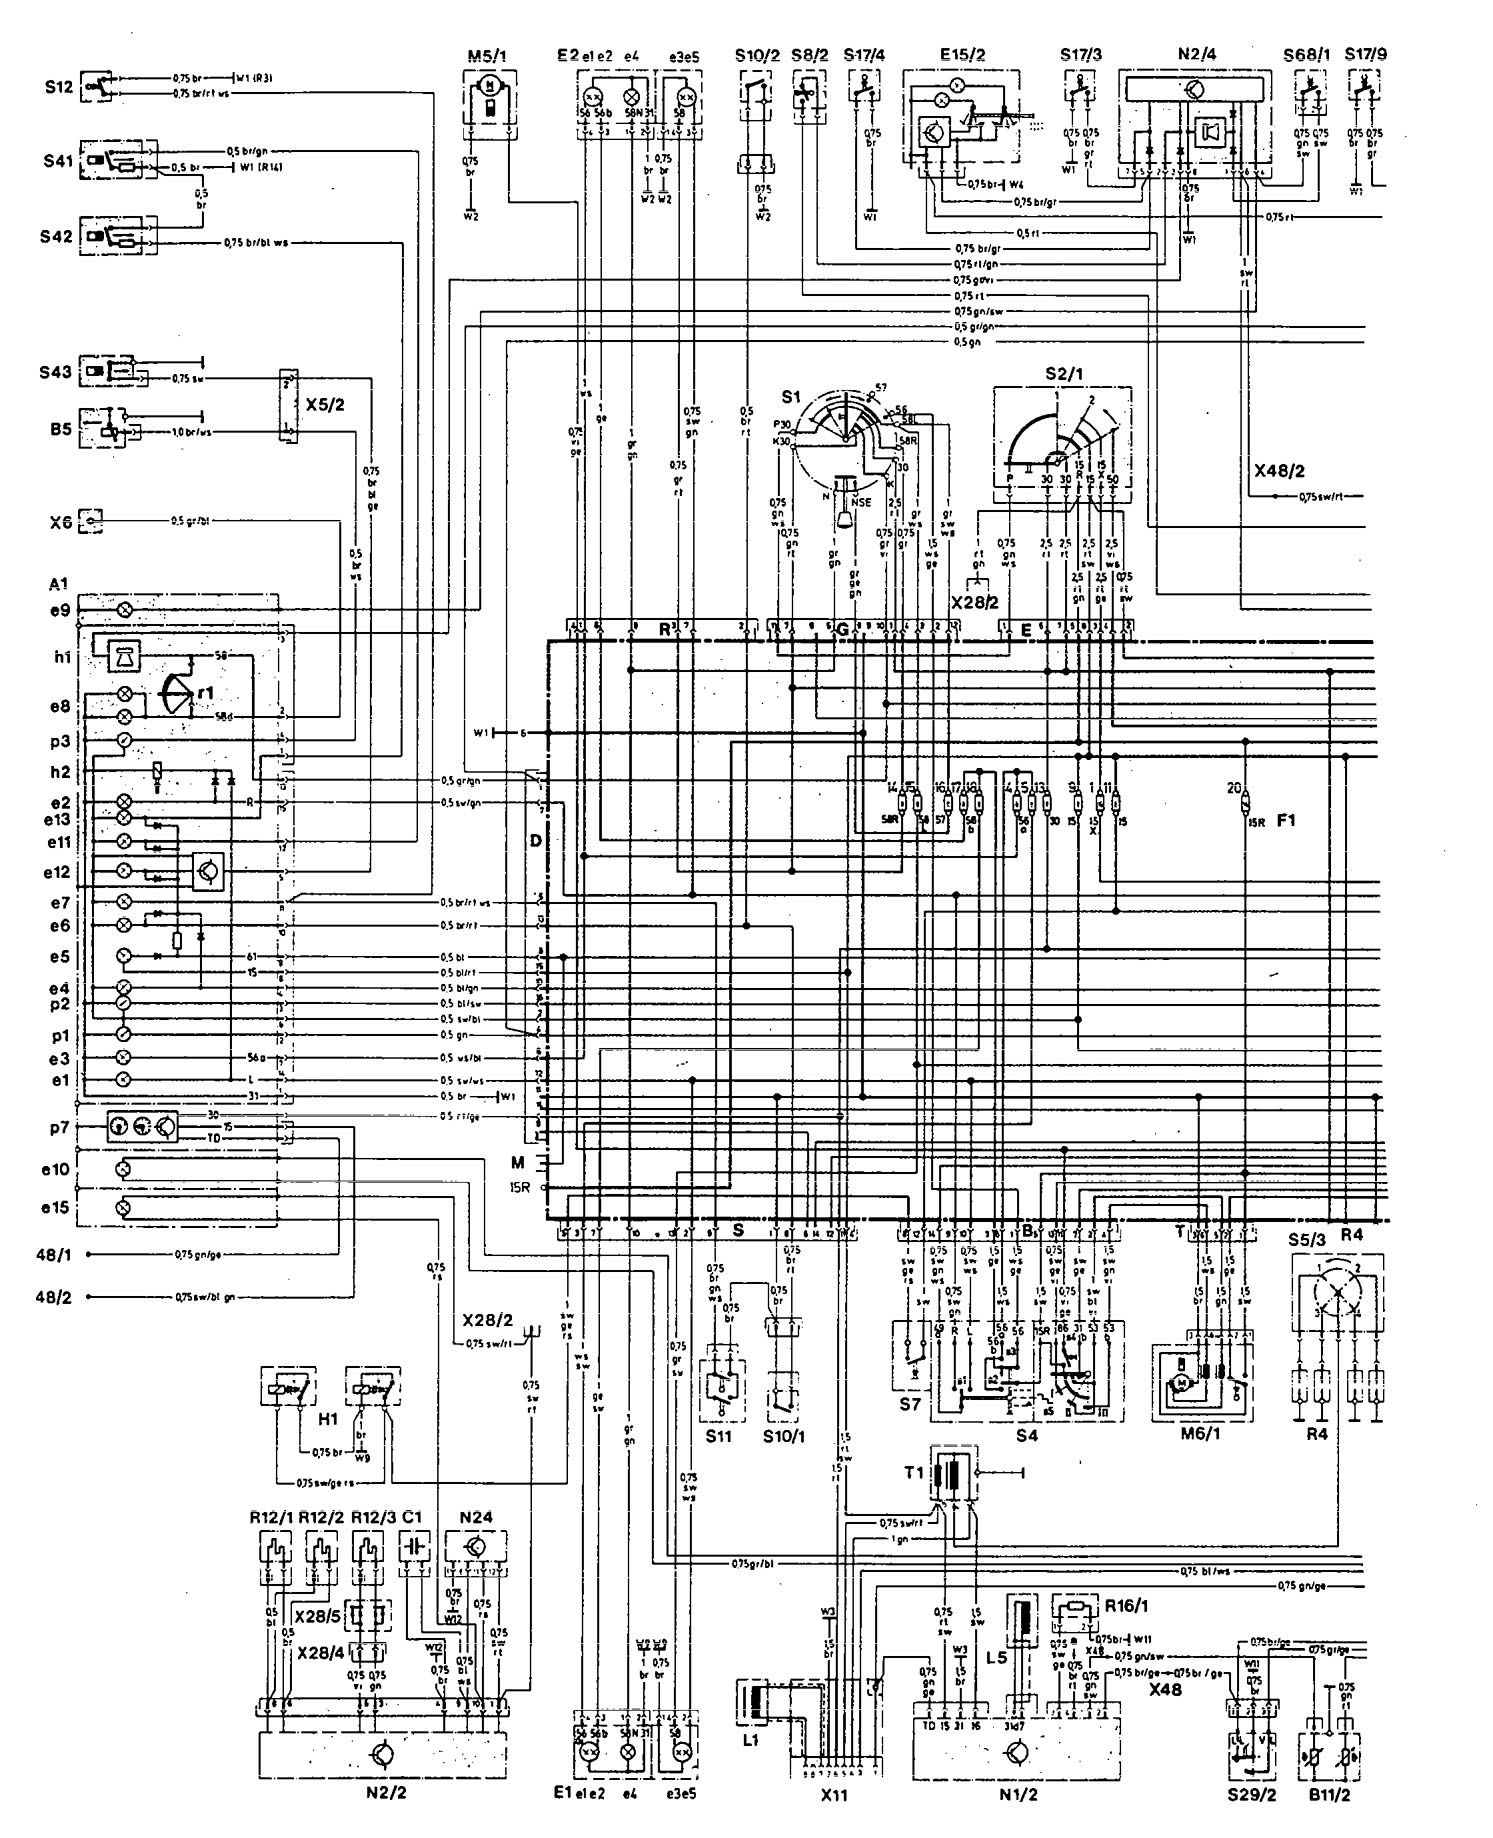 E320 Wire Diagram - 2003 Ford Explorer Spark Plug Wire Diagram -  pump.deco-doe3.decorresine.itWiring Diagram Resource